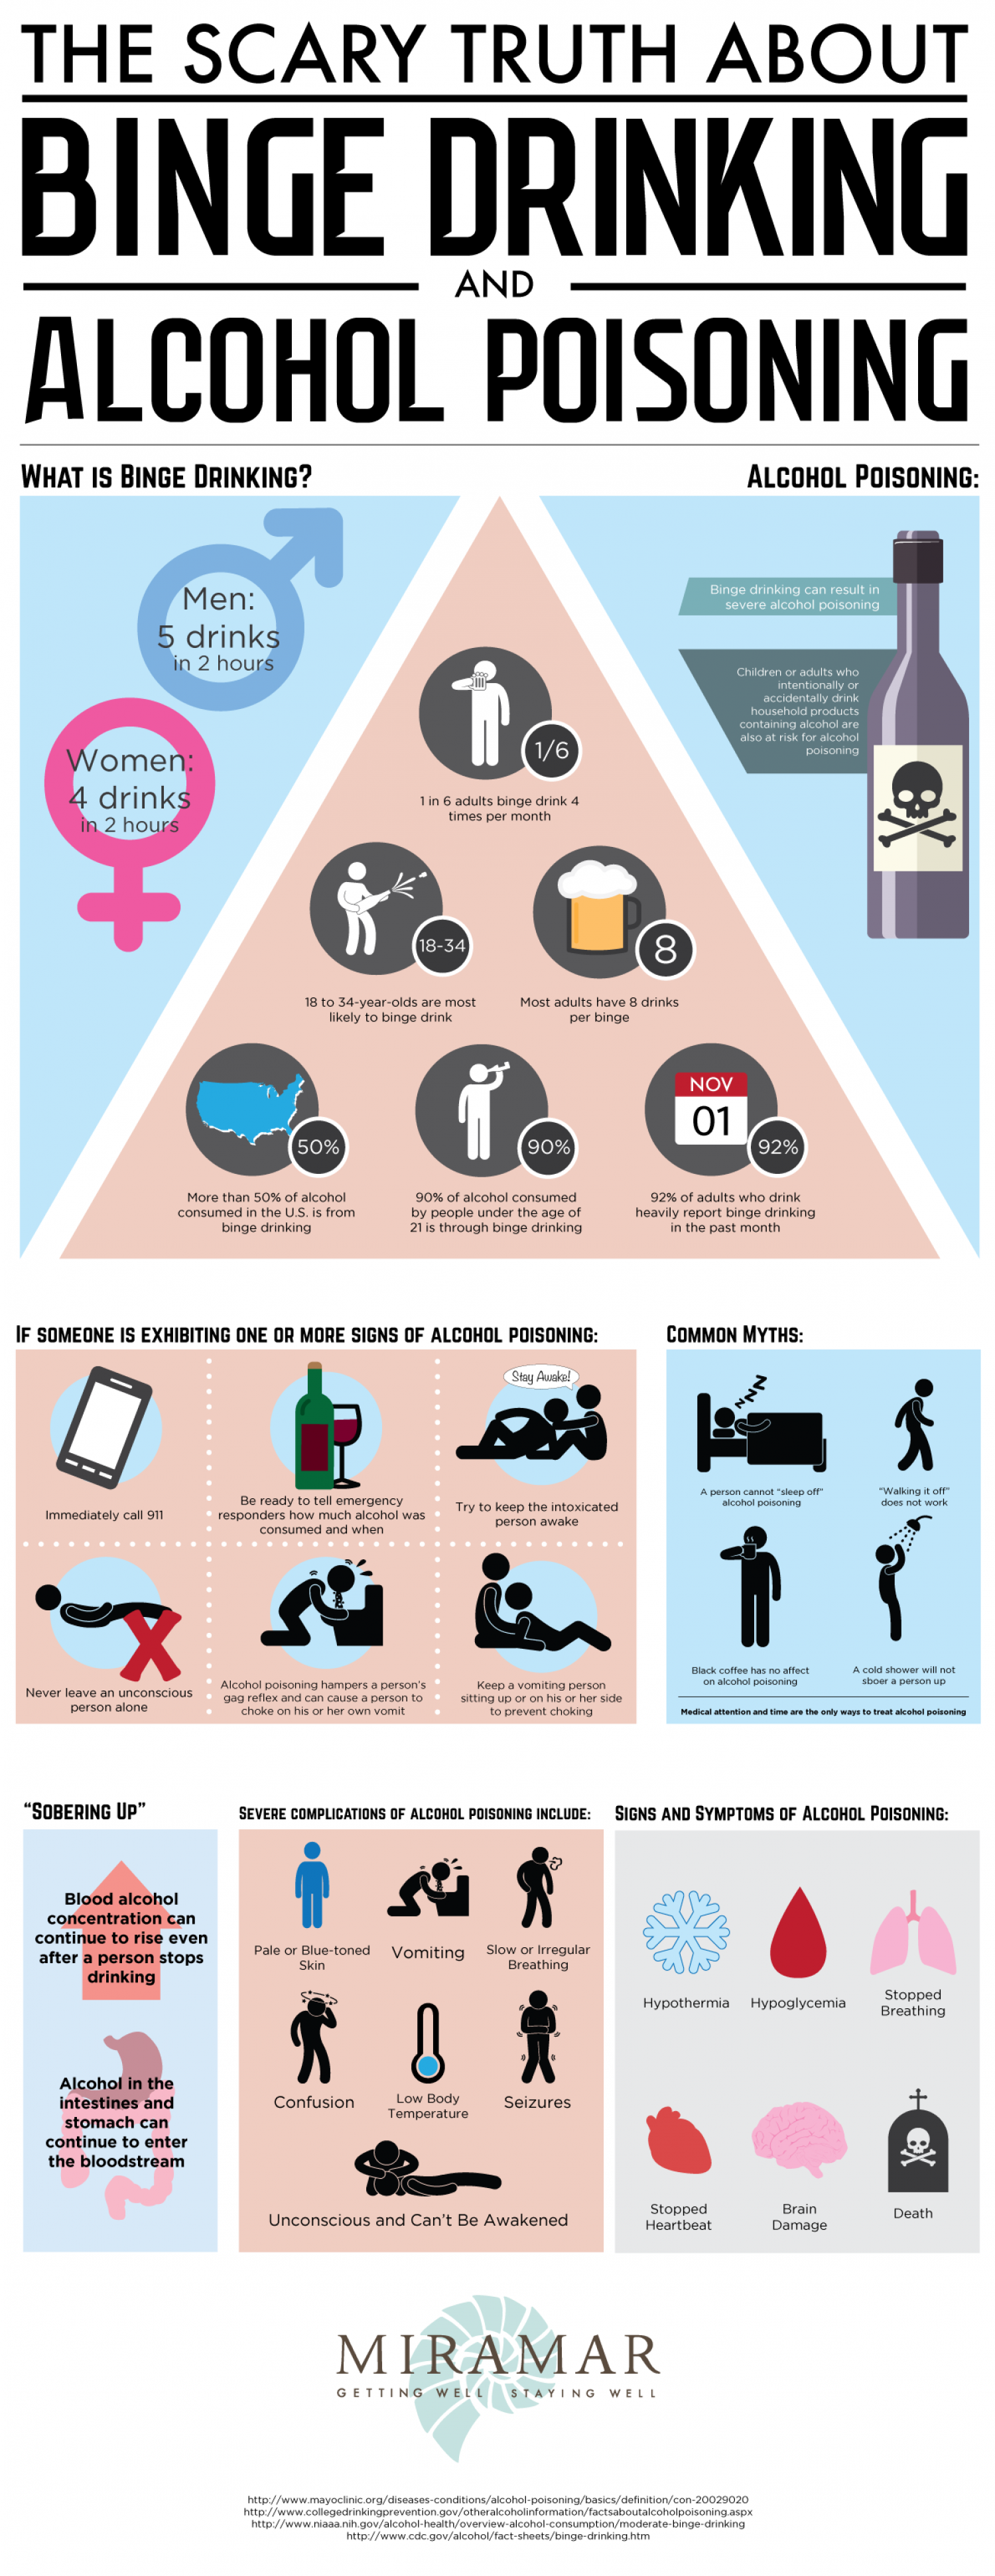 The Scary Truth About Binge Drinking and Alcohol Poisoning Infographic